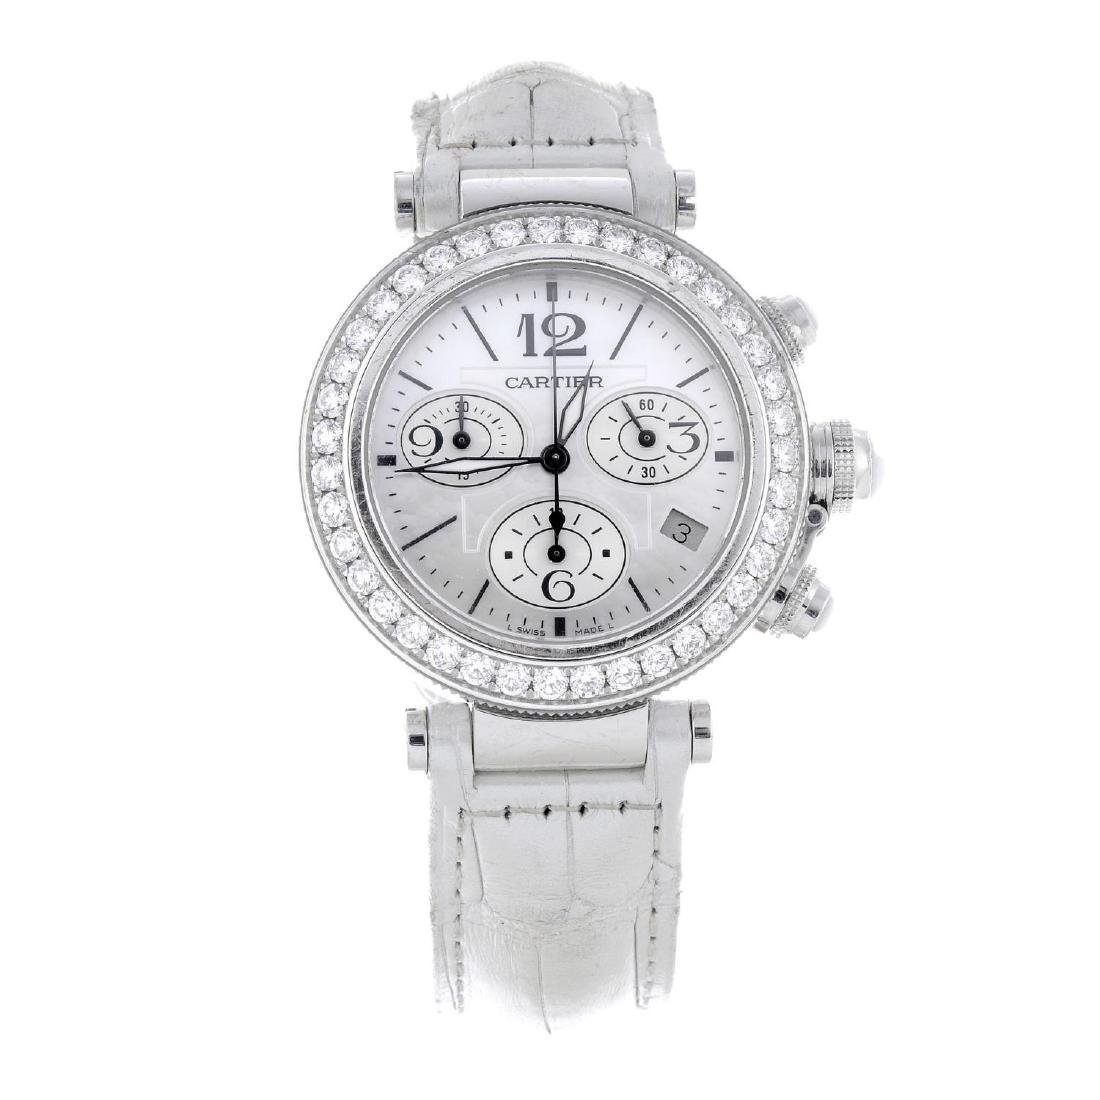 CARTIER - a Pasha chronograph wrist watch. 18ct white